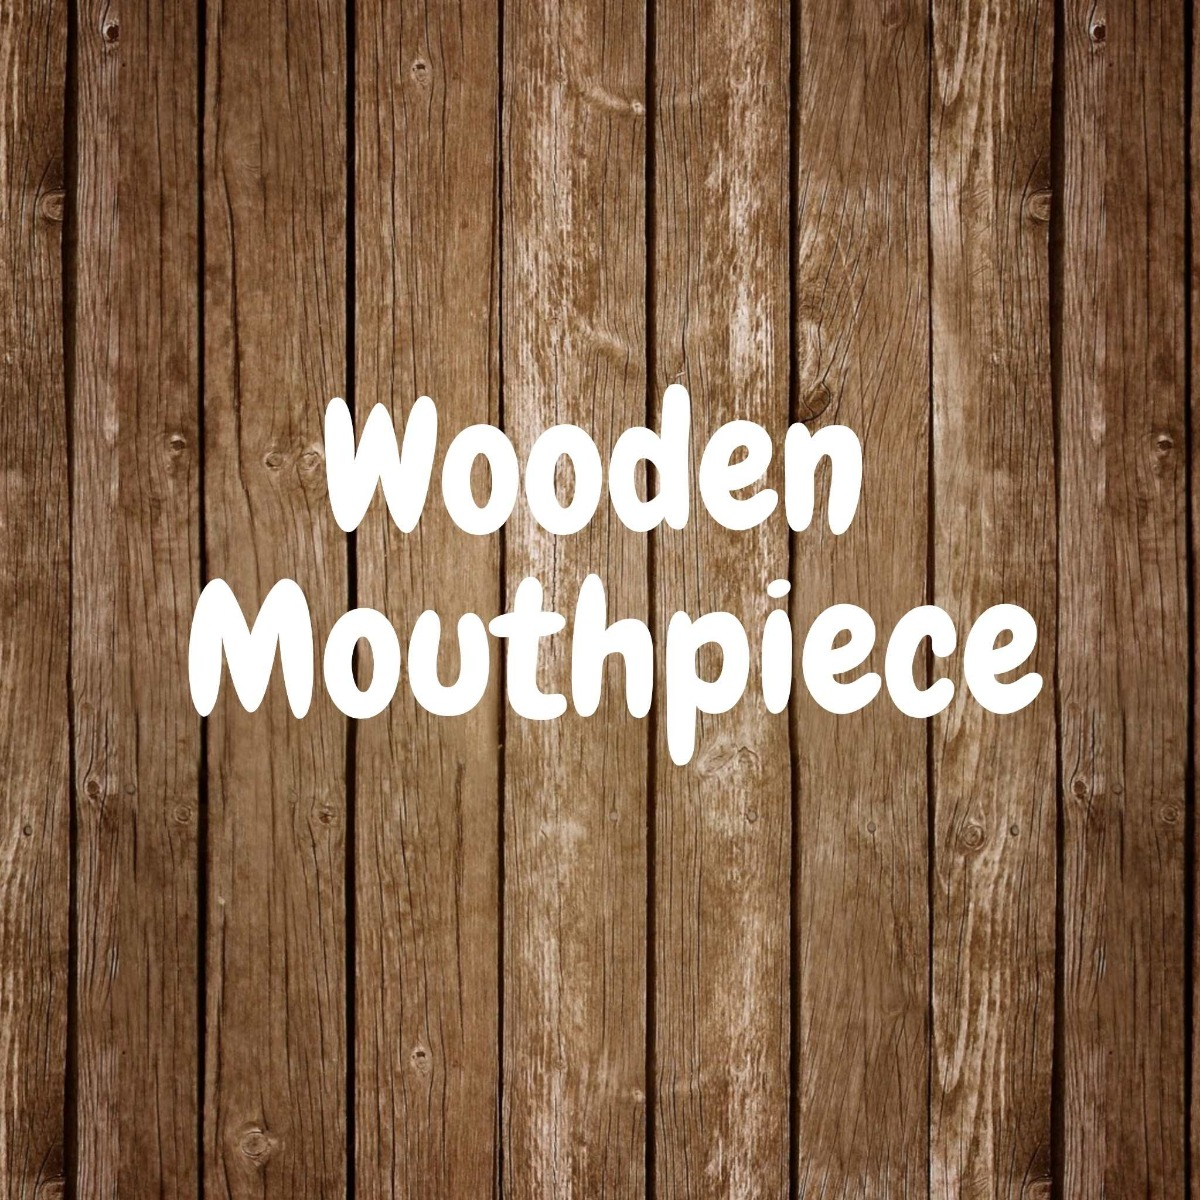 text saying wooden mouthpiece with wooden background